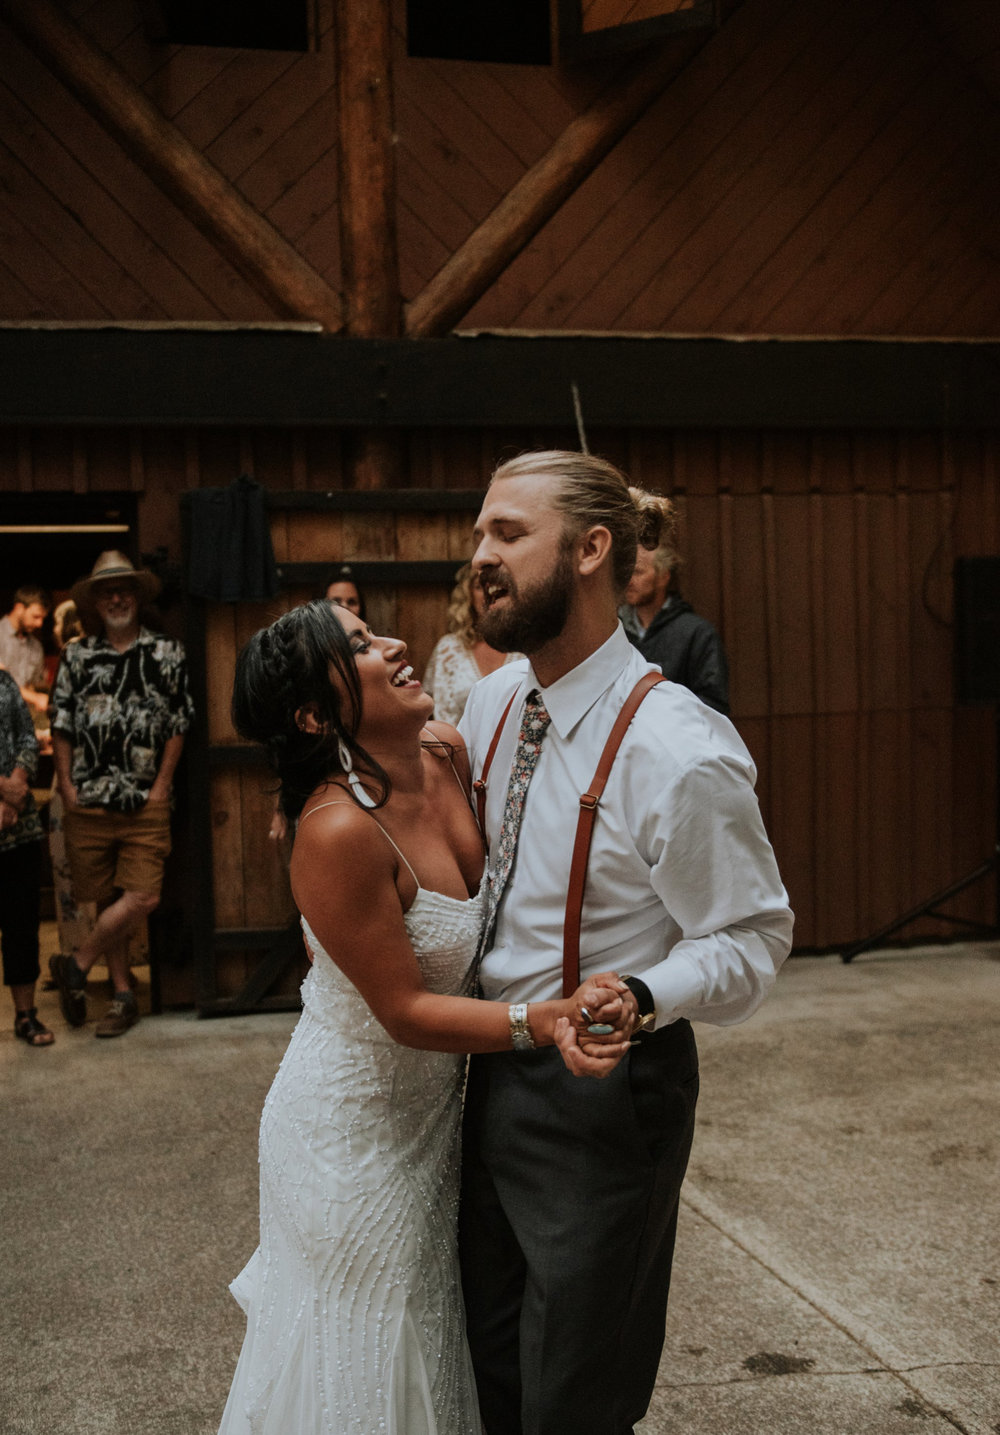 intimate-boho-campfire-wedding-shangri-la-on-the-green-seattle-wedding-photographer-caitlyn-nikula-photography-131.jpg